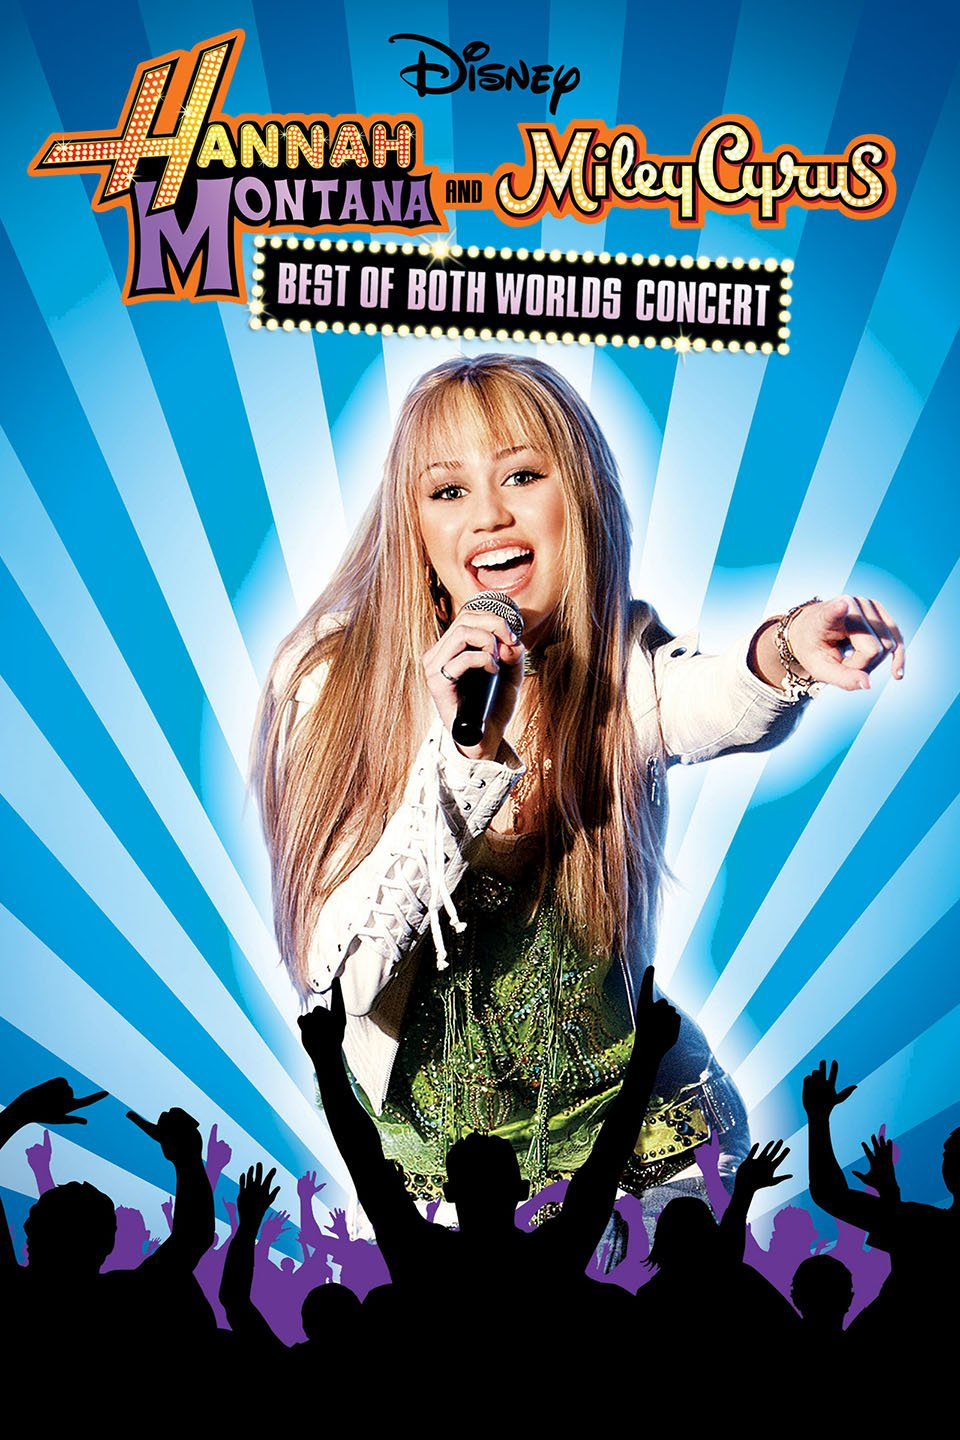 Hannah Montana and Miley Cyrus: Best of Both Worlds Concert, 2008